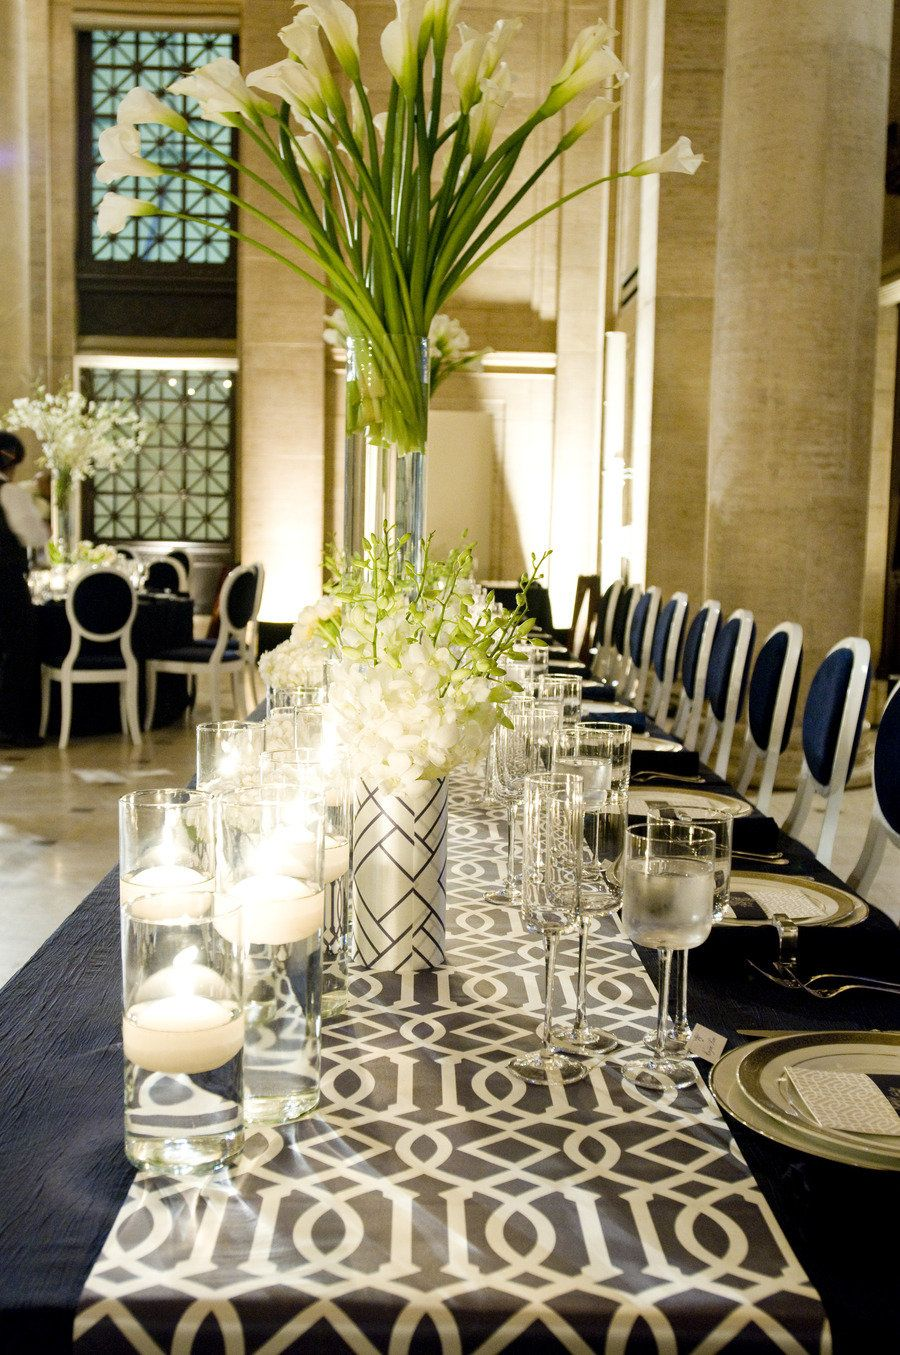 love the color Photography by angiesilvy.com, Event Design by gloriawongdesign.com, Event Planning   Production by jubileelauevents.com, Floral Design by huntlittlefield.com